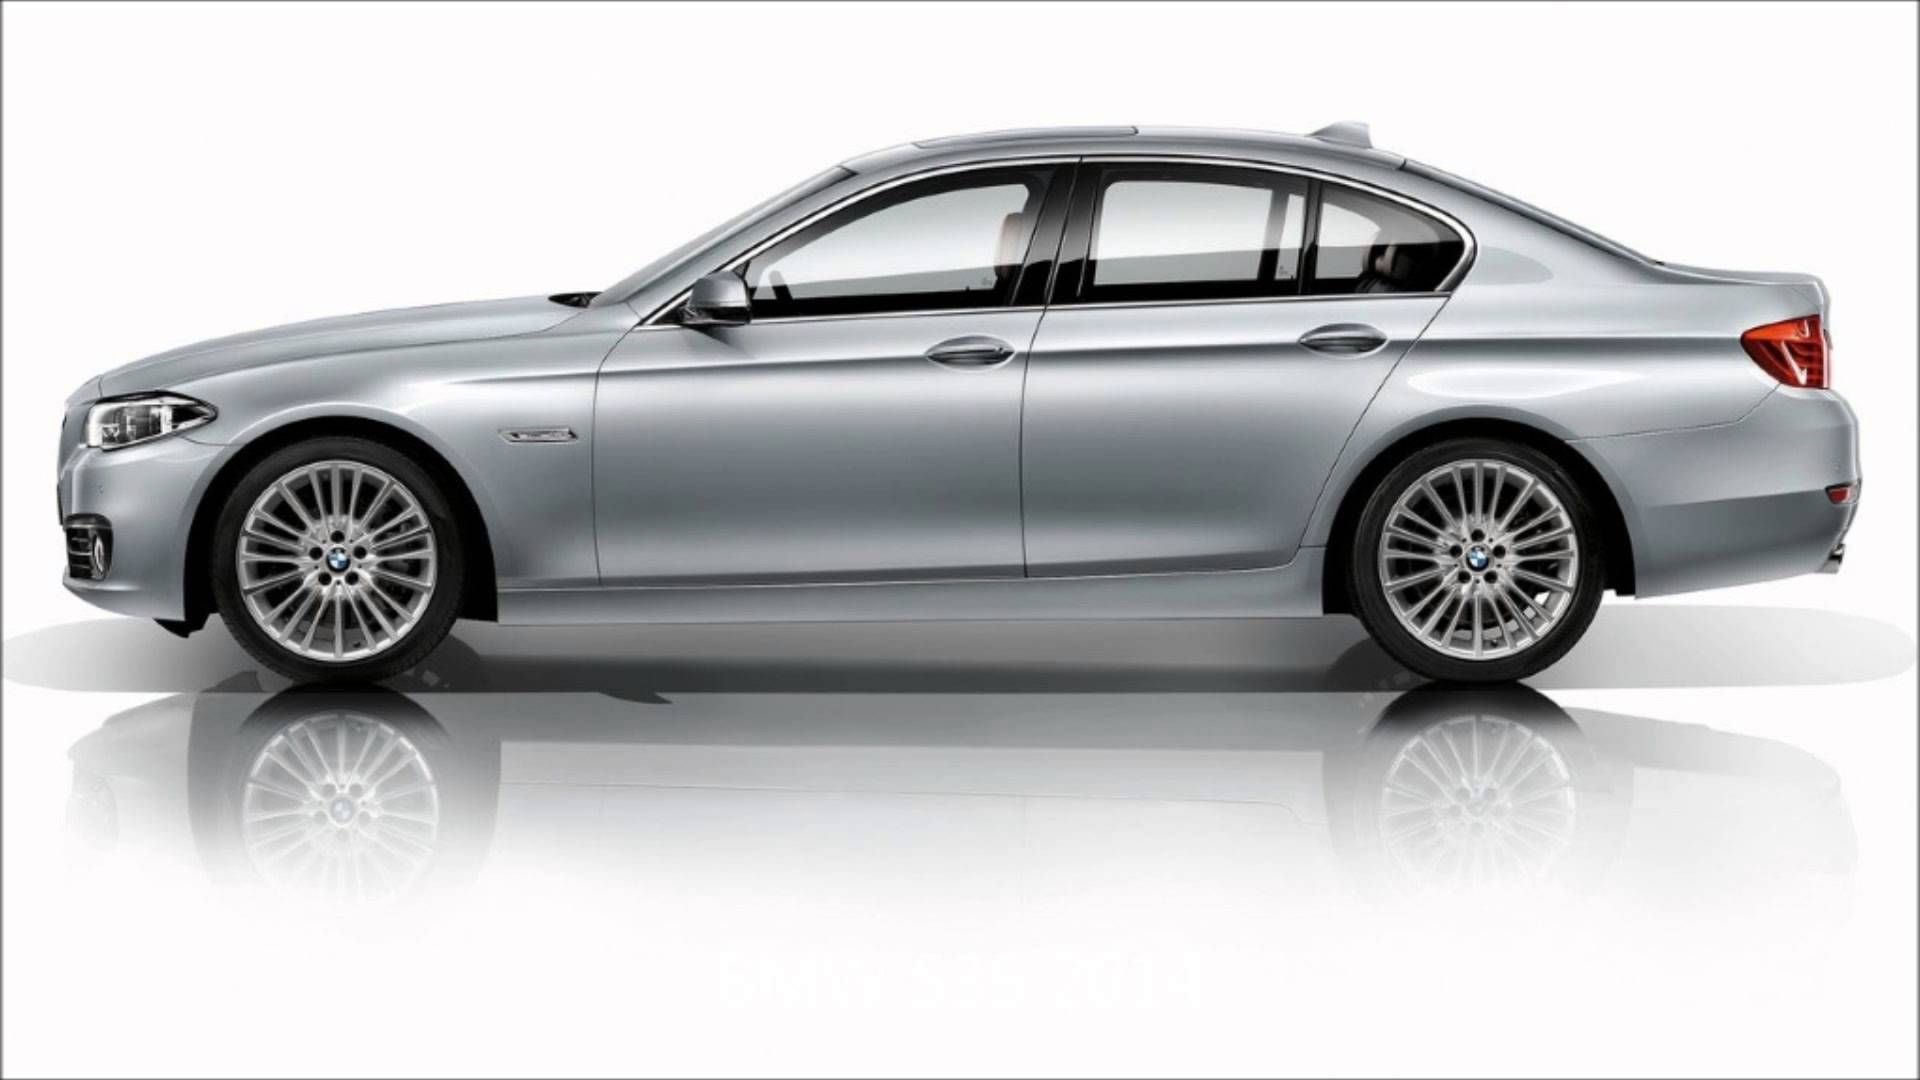 BMW 535i 2014 I R6 Turbo 300 hp and 300 lb ft of torque I Review